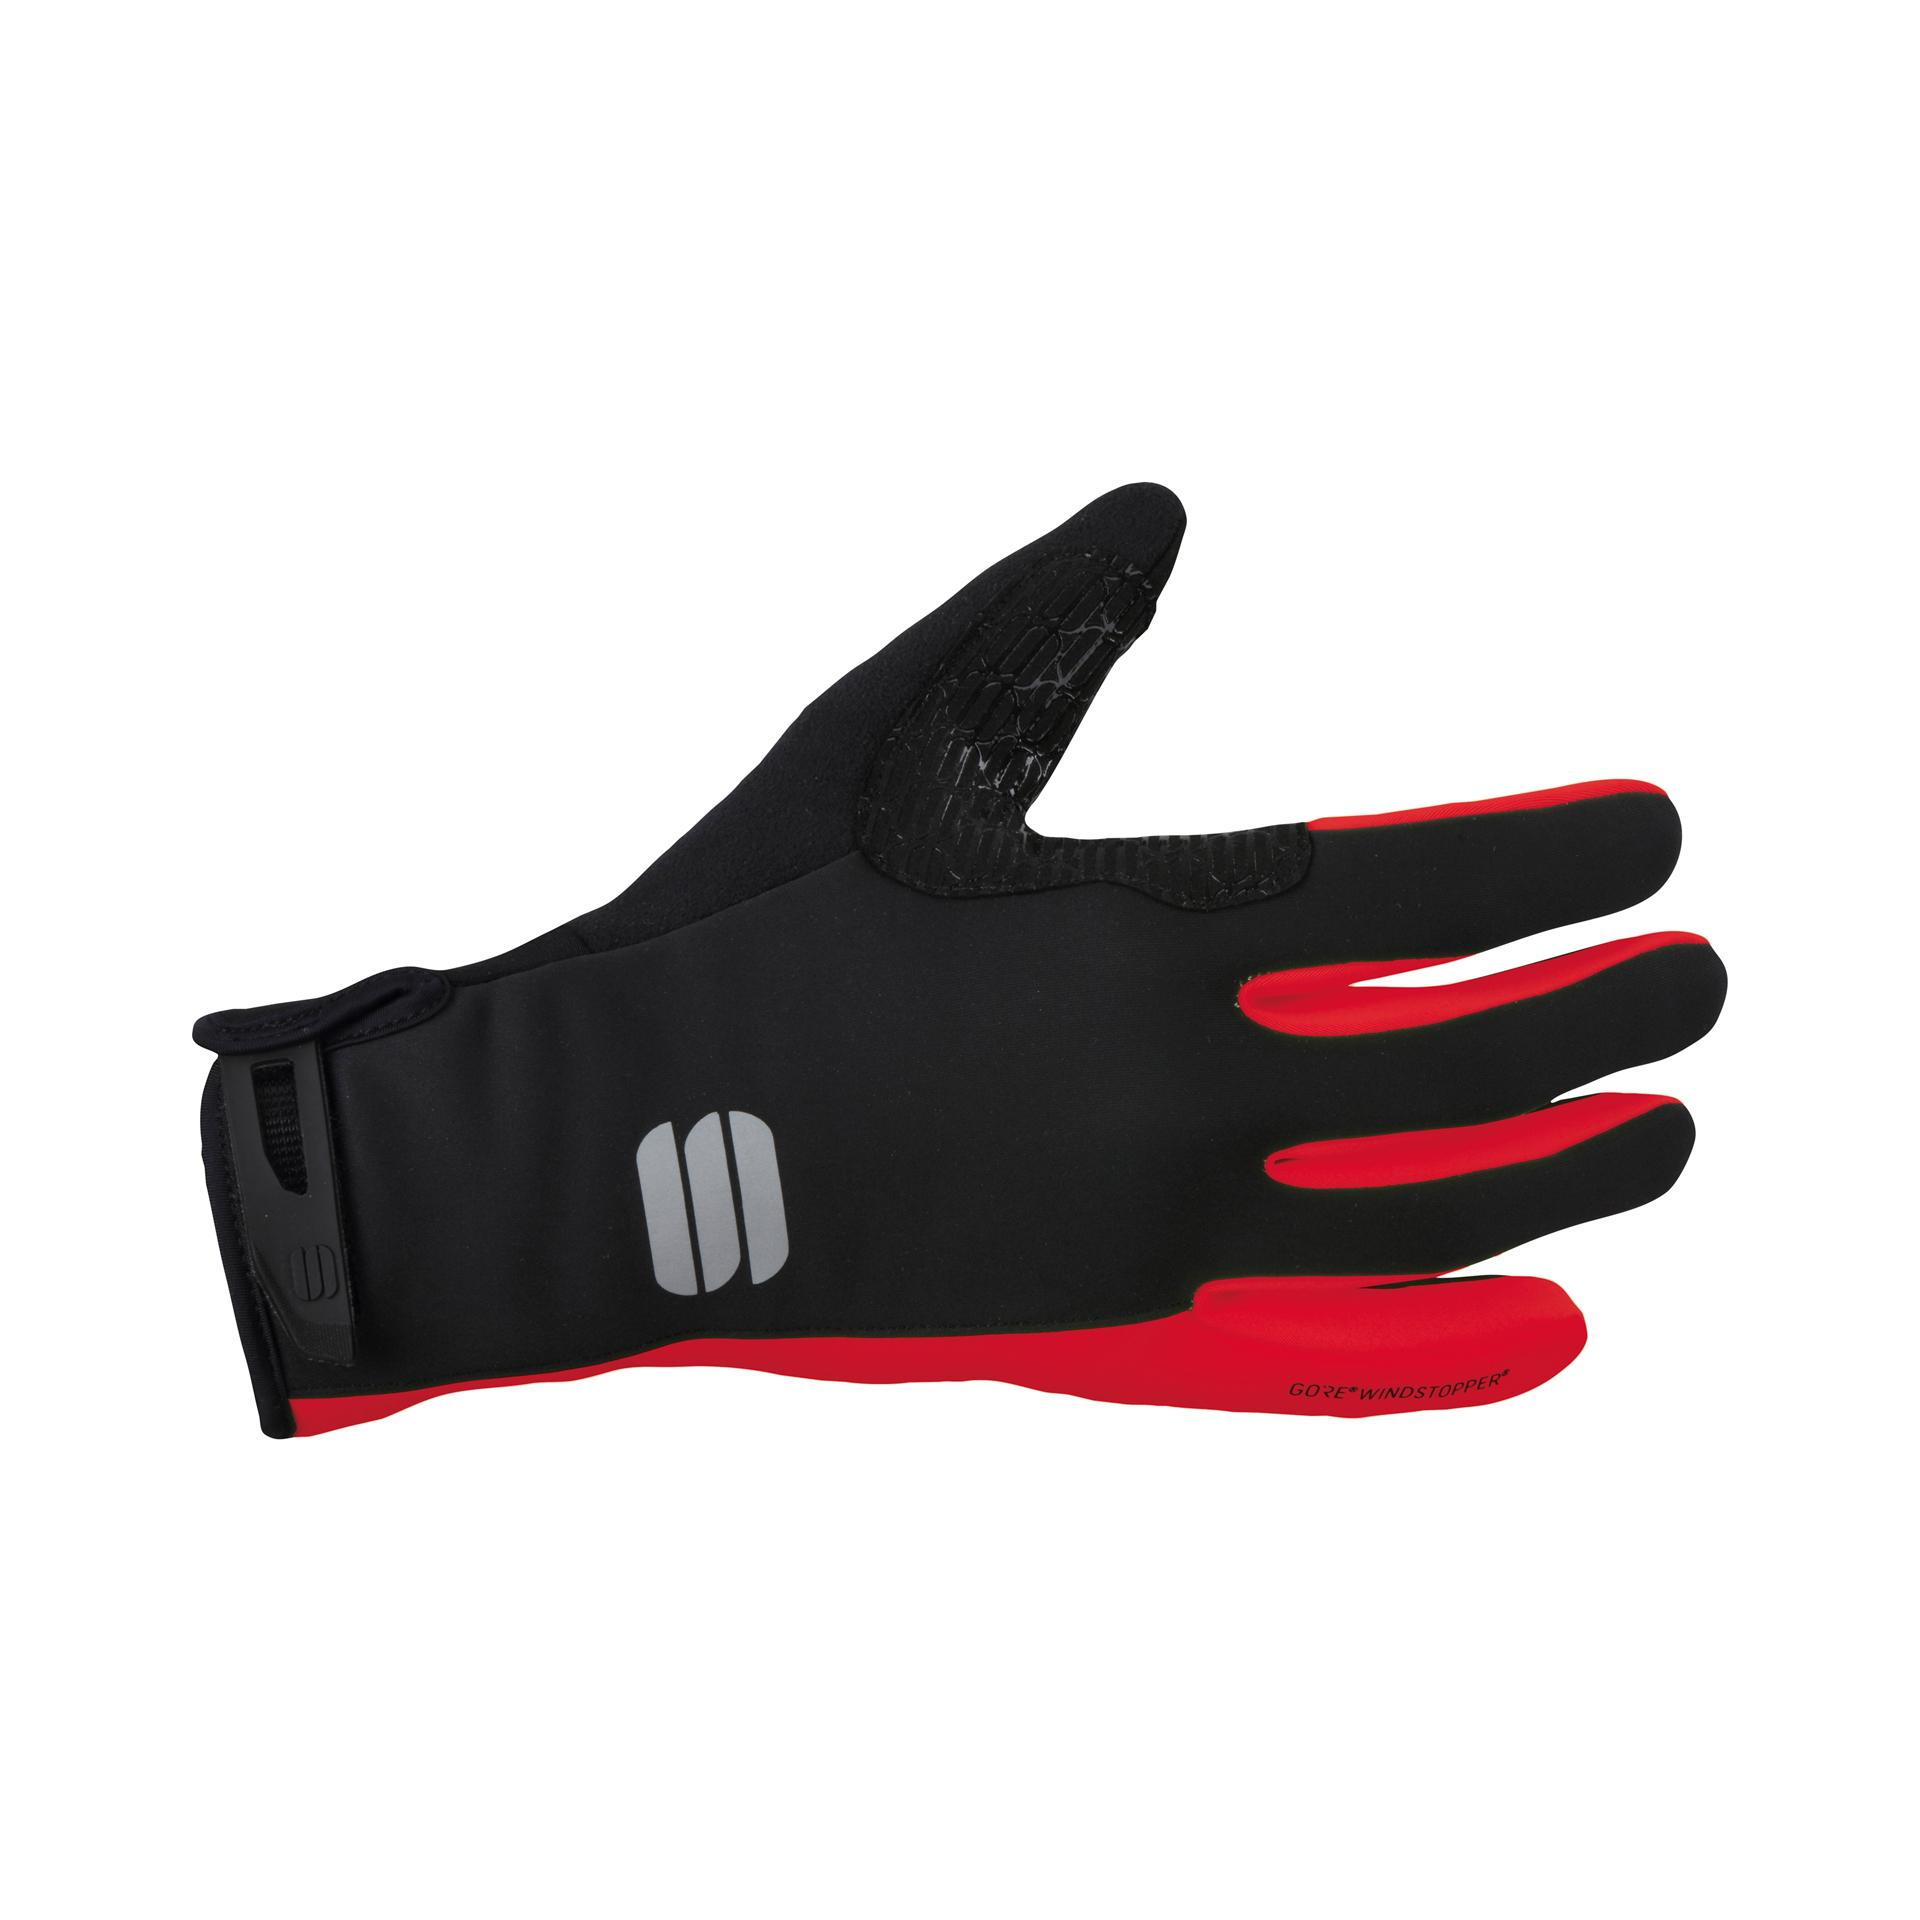 Sportful Fietshandschoenen winter Heren Zwart Rood / SF Ws Essential 2 Glove-Black/Red